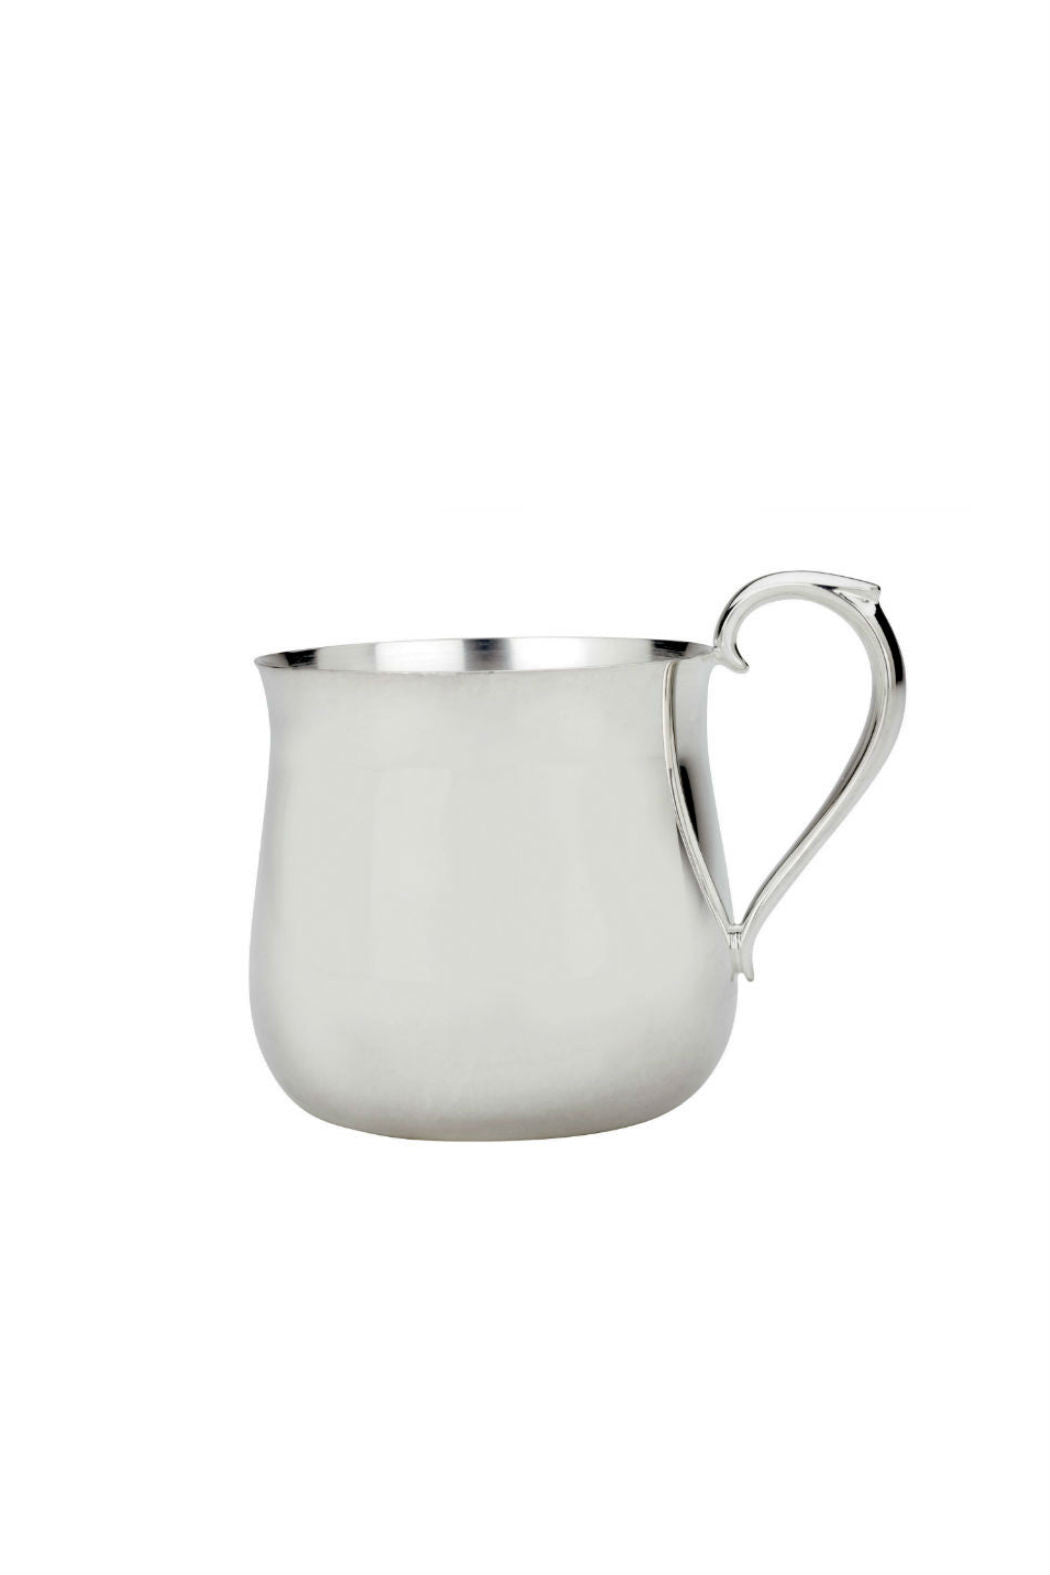 Pelham Silver Baby Cup - New Orientation